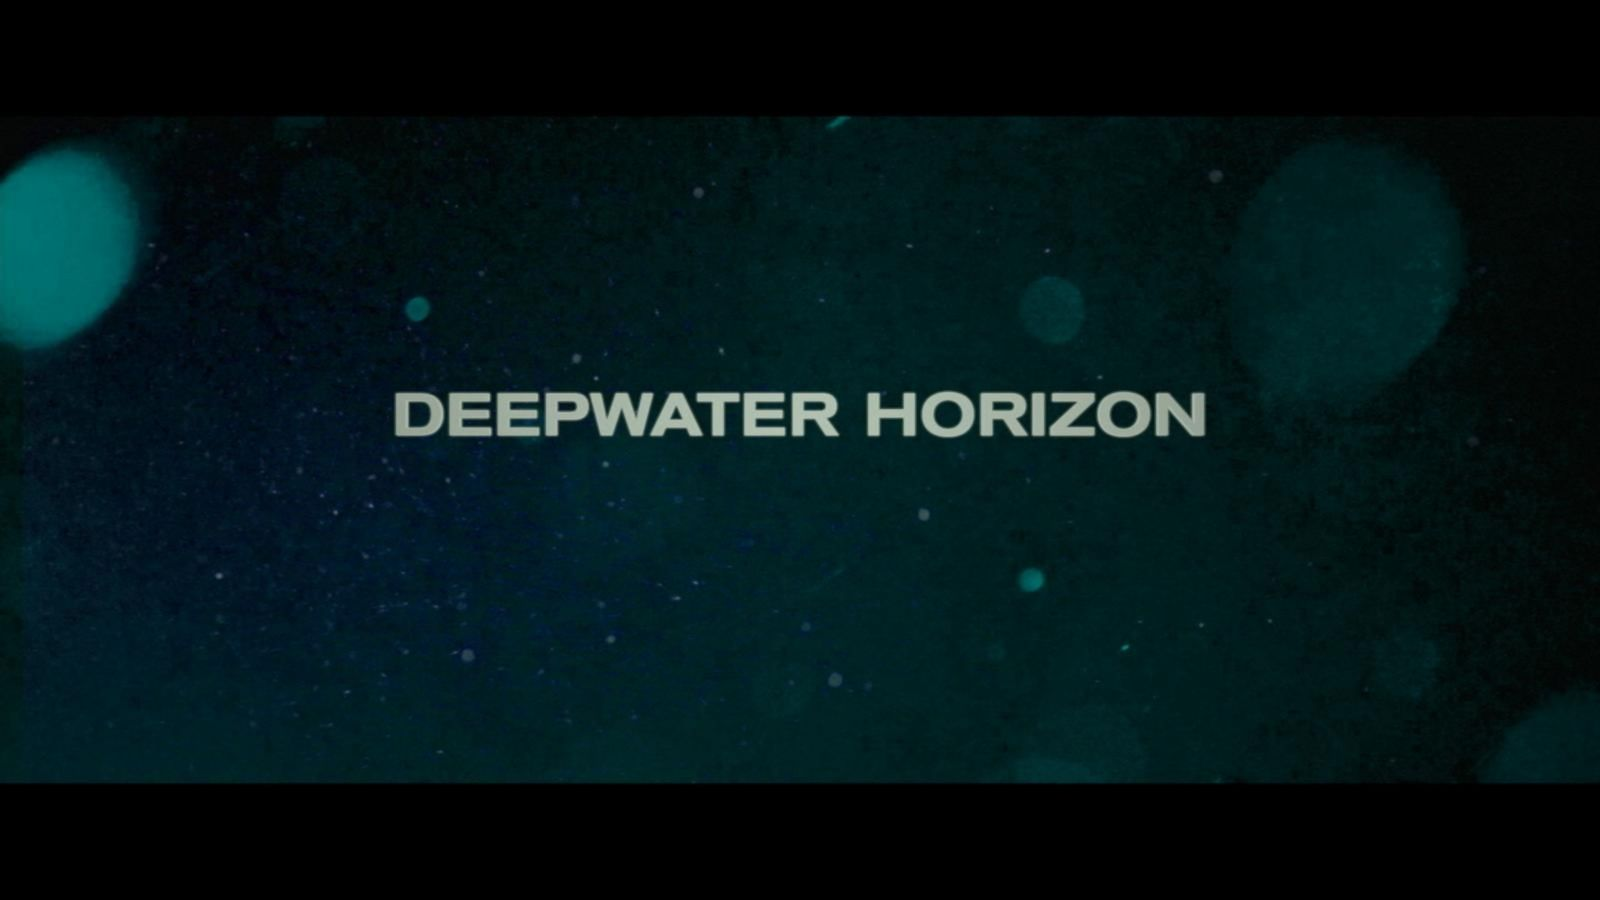 First Look at 'Deepwater Horizon' Starring Mark Wahlberg